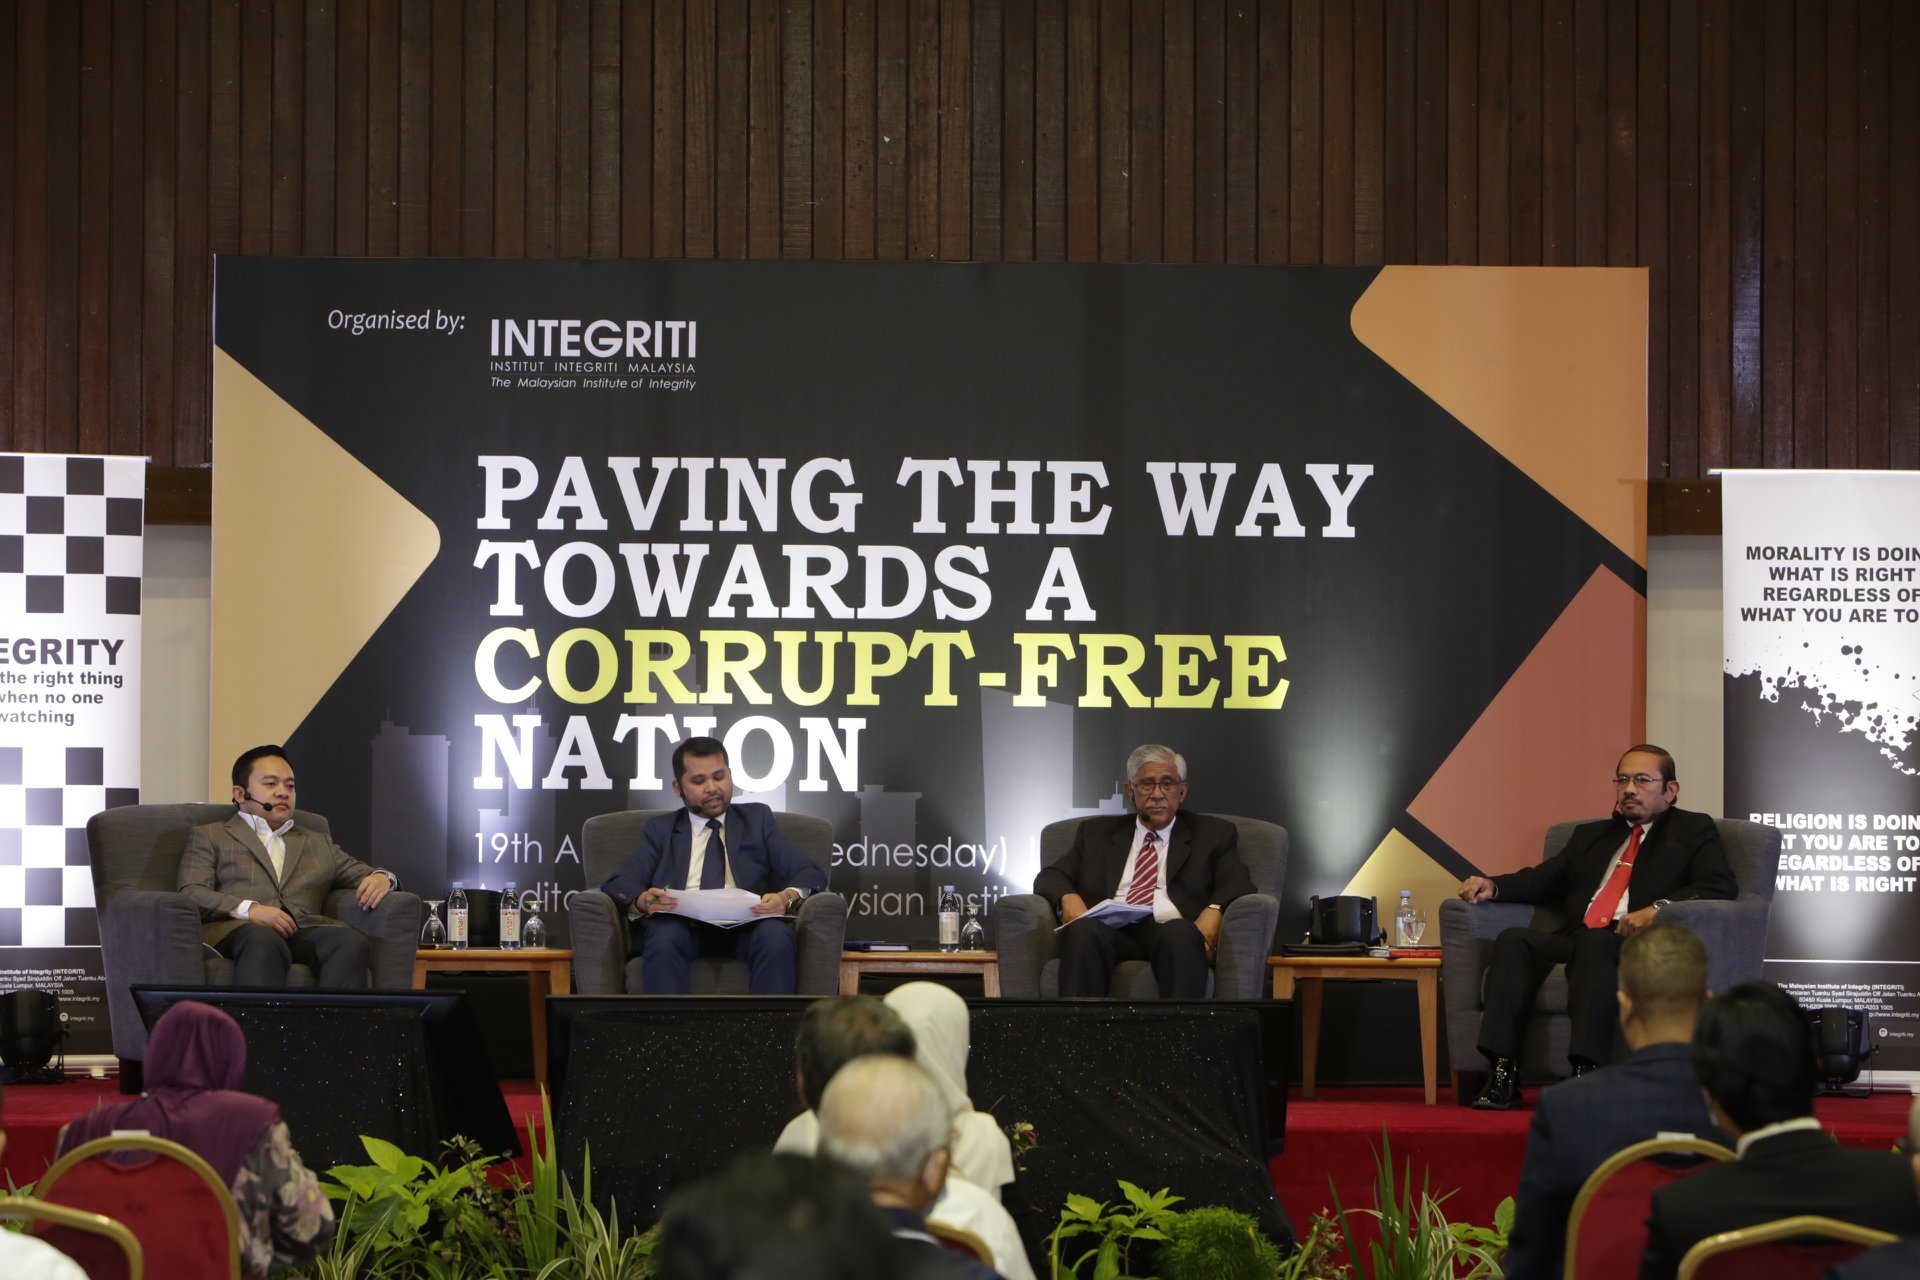 Paving the Way Towards A Corrupt - Free Nation